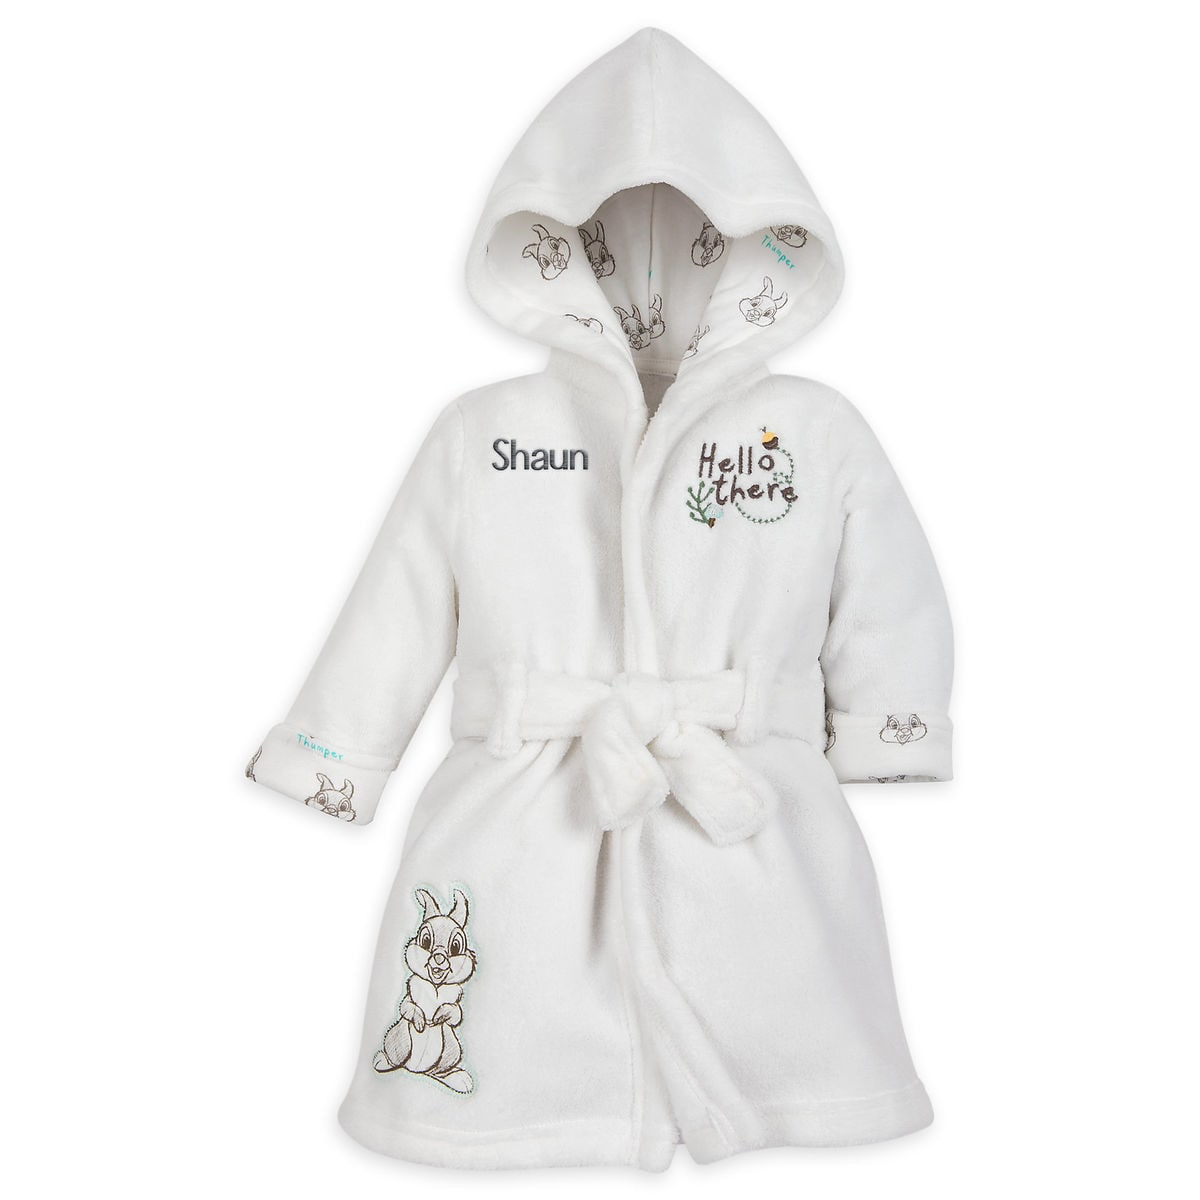 d9169fd0bd6c Thumper Hooded Bath Robe for Baby - Personalizable